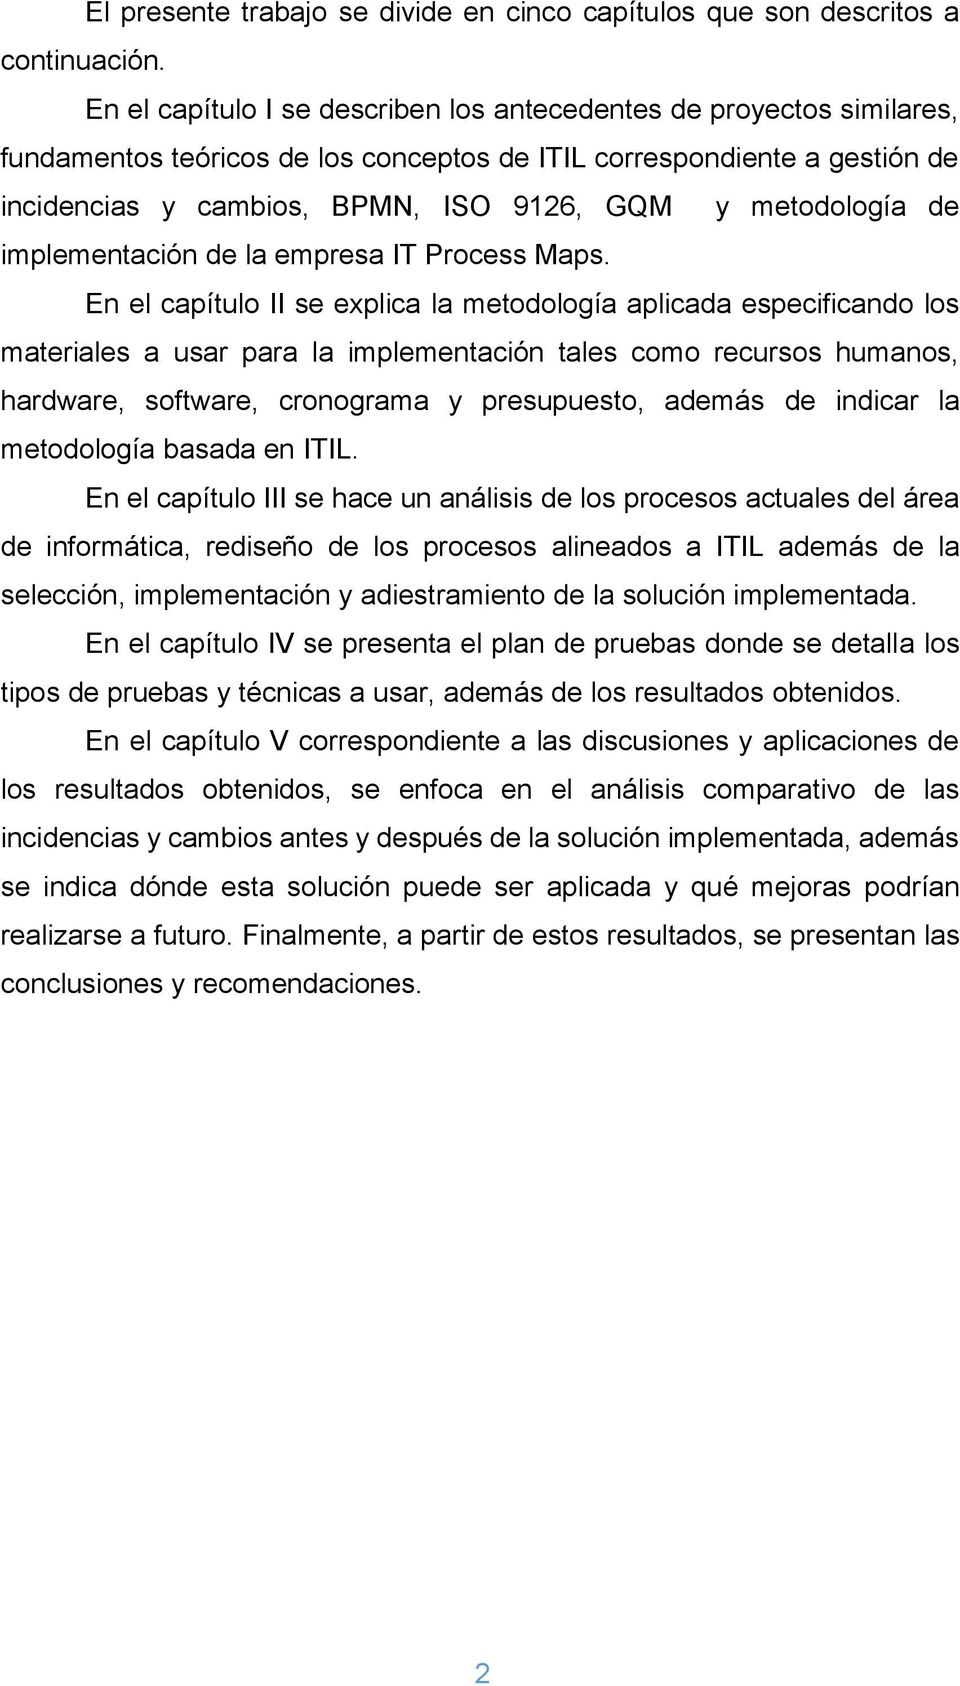 metodología de implementación de la empresa IT Process Maps.